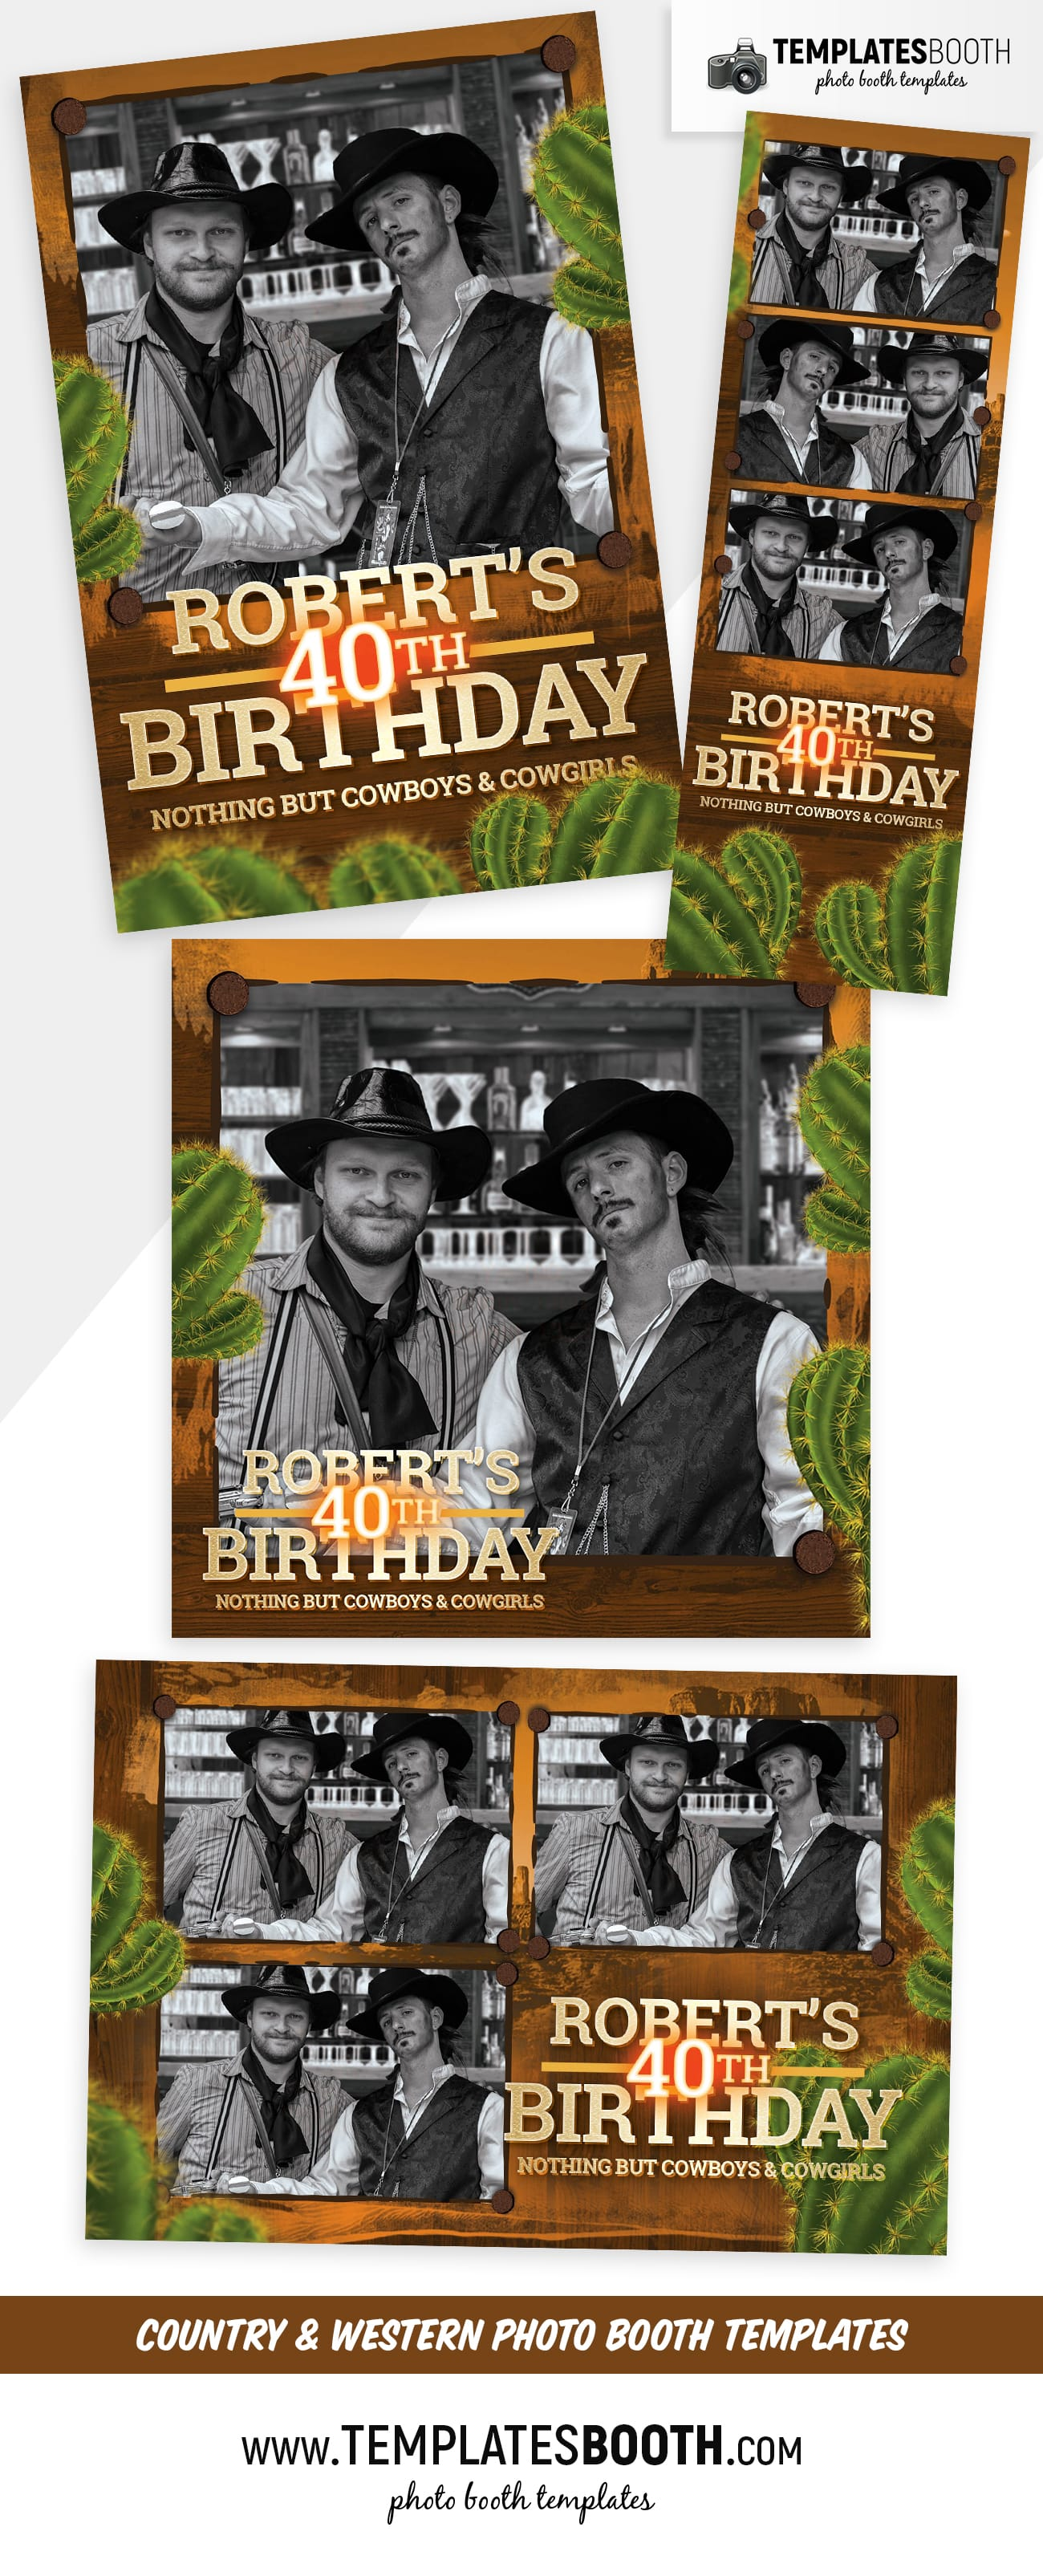 Country & Western Photo Booth Template (full preview)